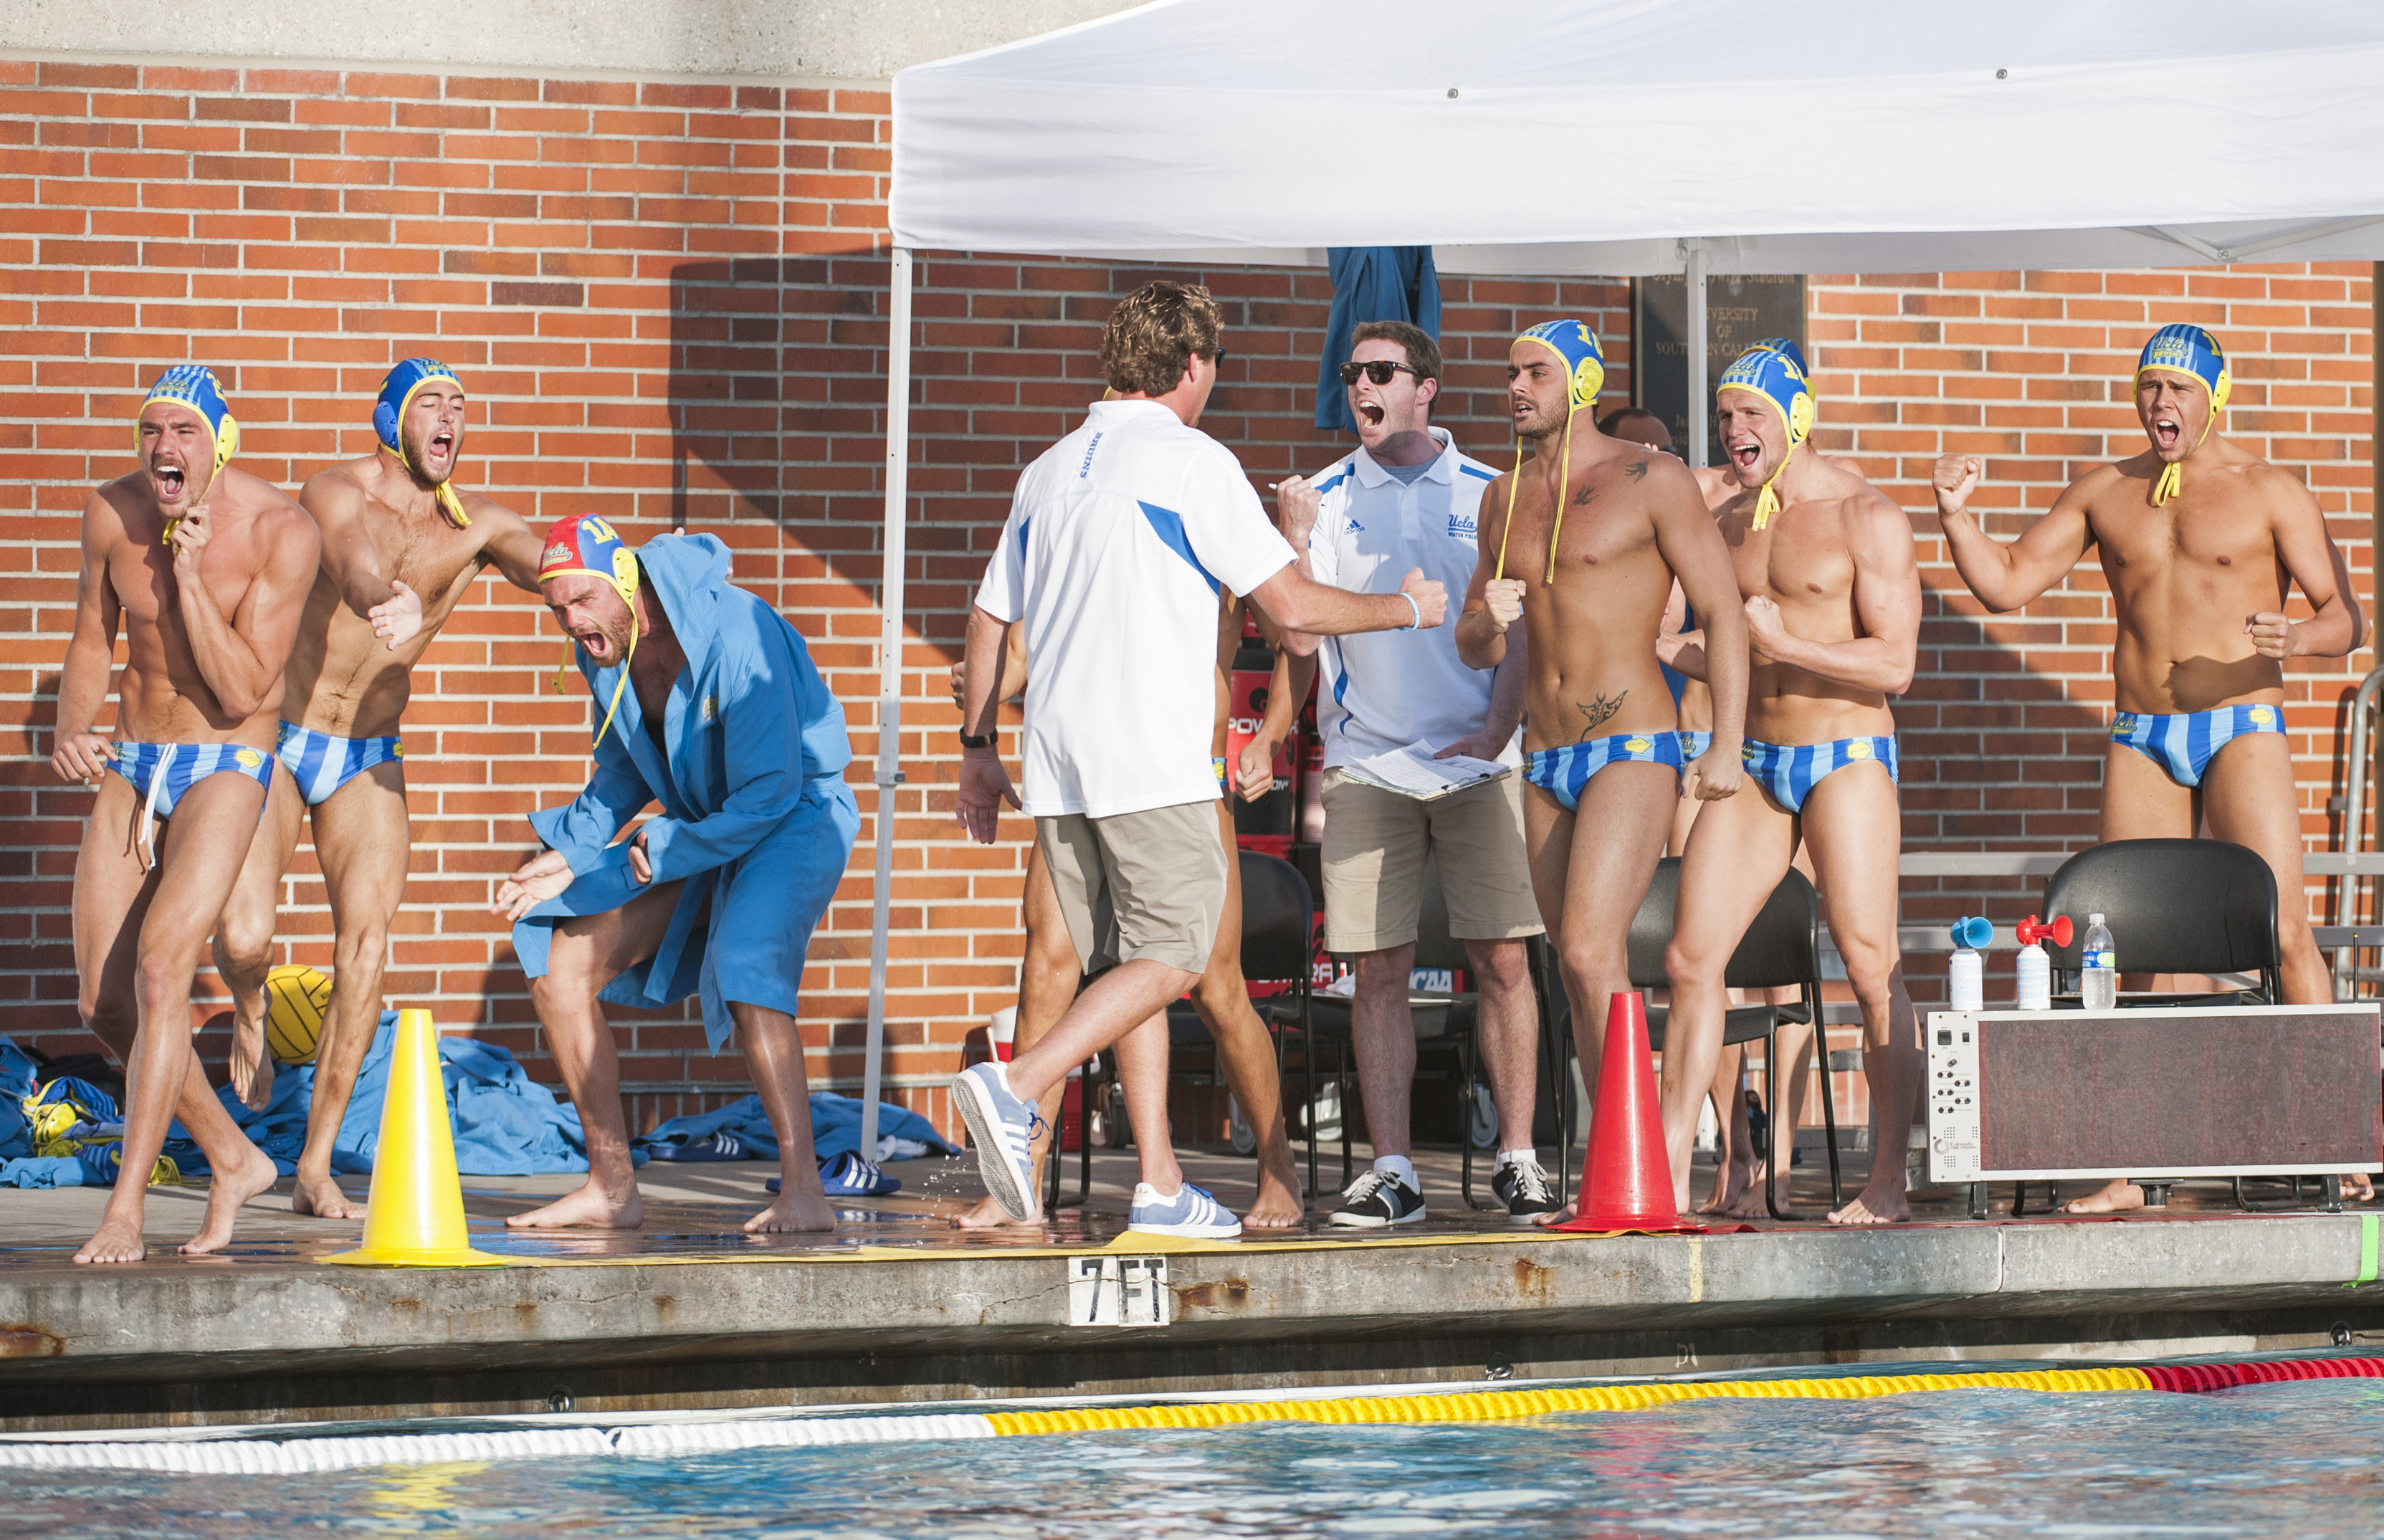 The UCLA men's water polo team celebrates following a sudden death overtime victory over No. 4 Stanford. Sophomore attacker Daniel Lenhart scored the game-winner on the Bruins' first possession of the period. UCLA will also receive an at-large bid to the NCAA tournament thanks to USC's victory over Cal in the MPSF tournament.